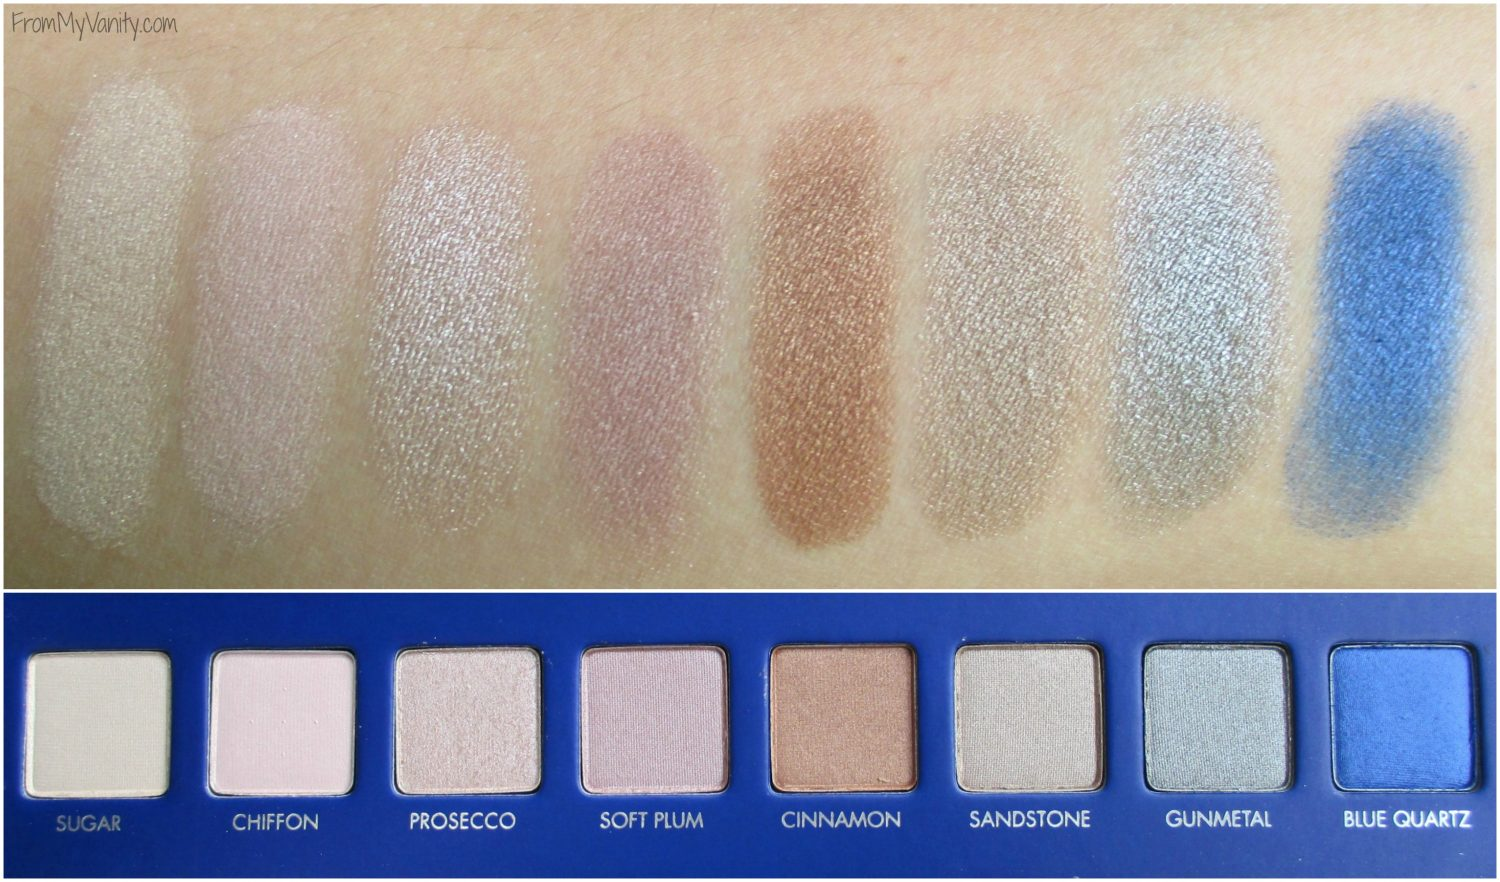 LORAC Mega Pro 2 Eyeshadow Palette // Review, Swatches, & Eye Looks // Swatches of Third Row // #LORACCosmetics #MegaPro2 FromMyVanity.com